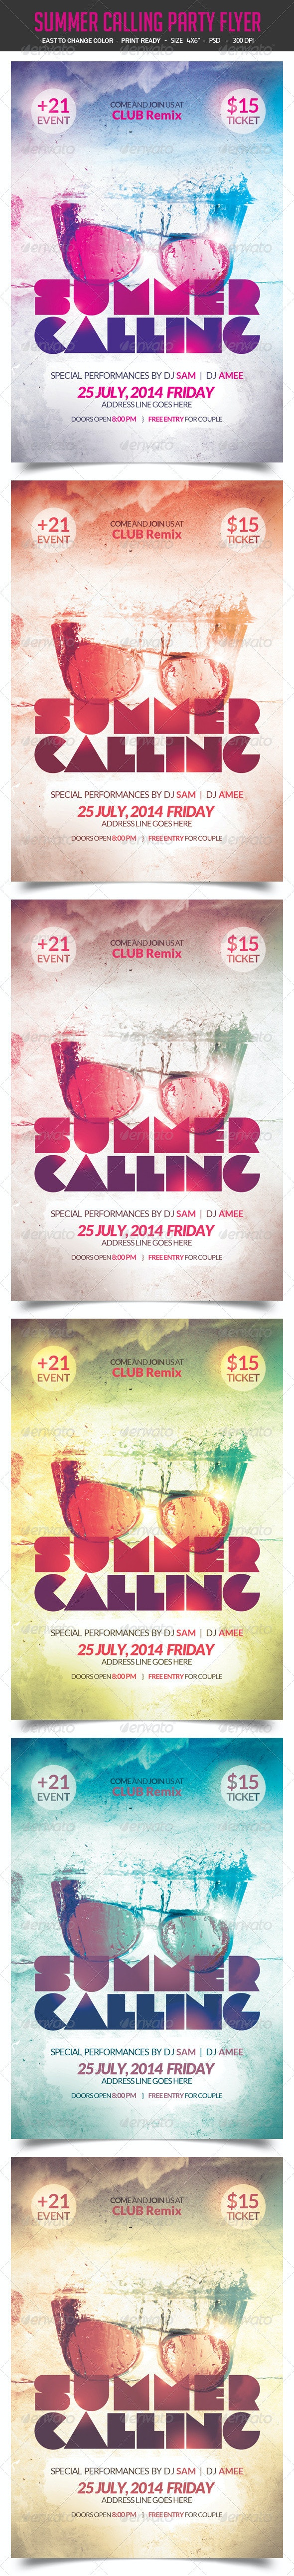 Summer Calling Party Flyer - Clubs & Parties Events